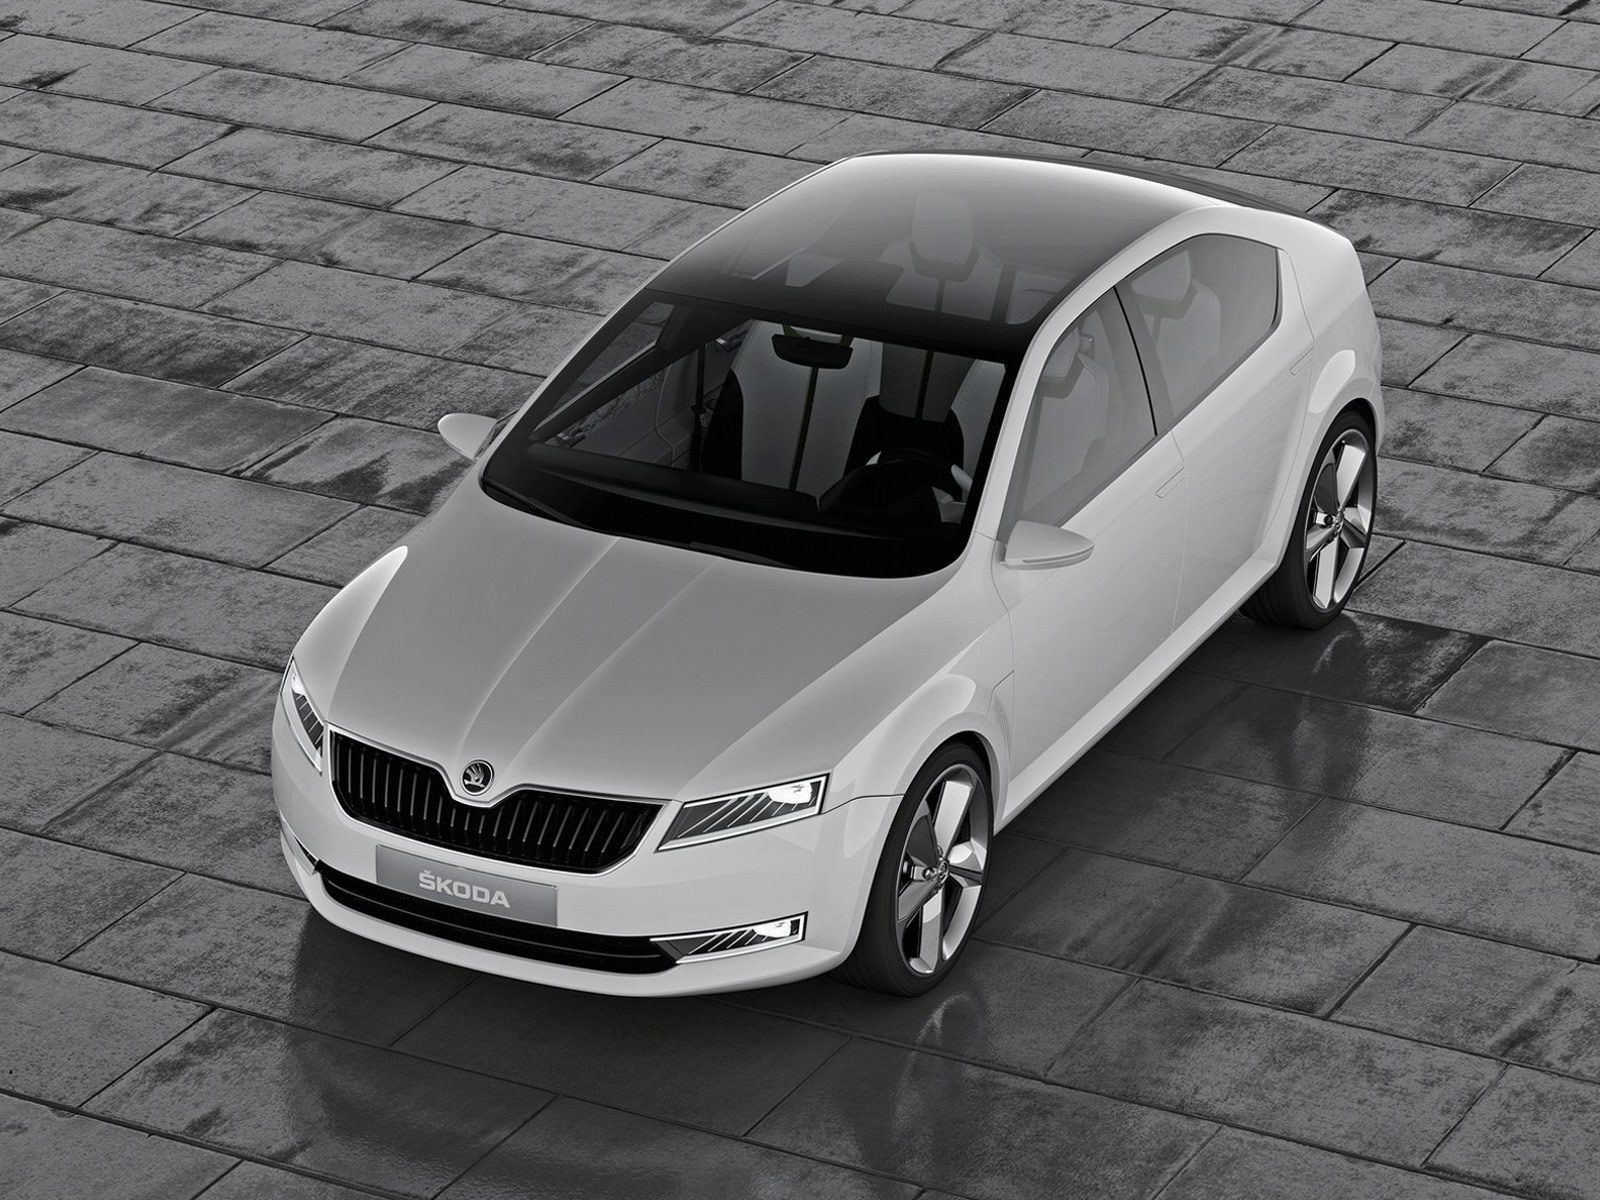 2017 Skoda Rapid To Launch Soon